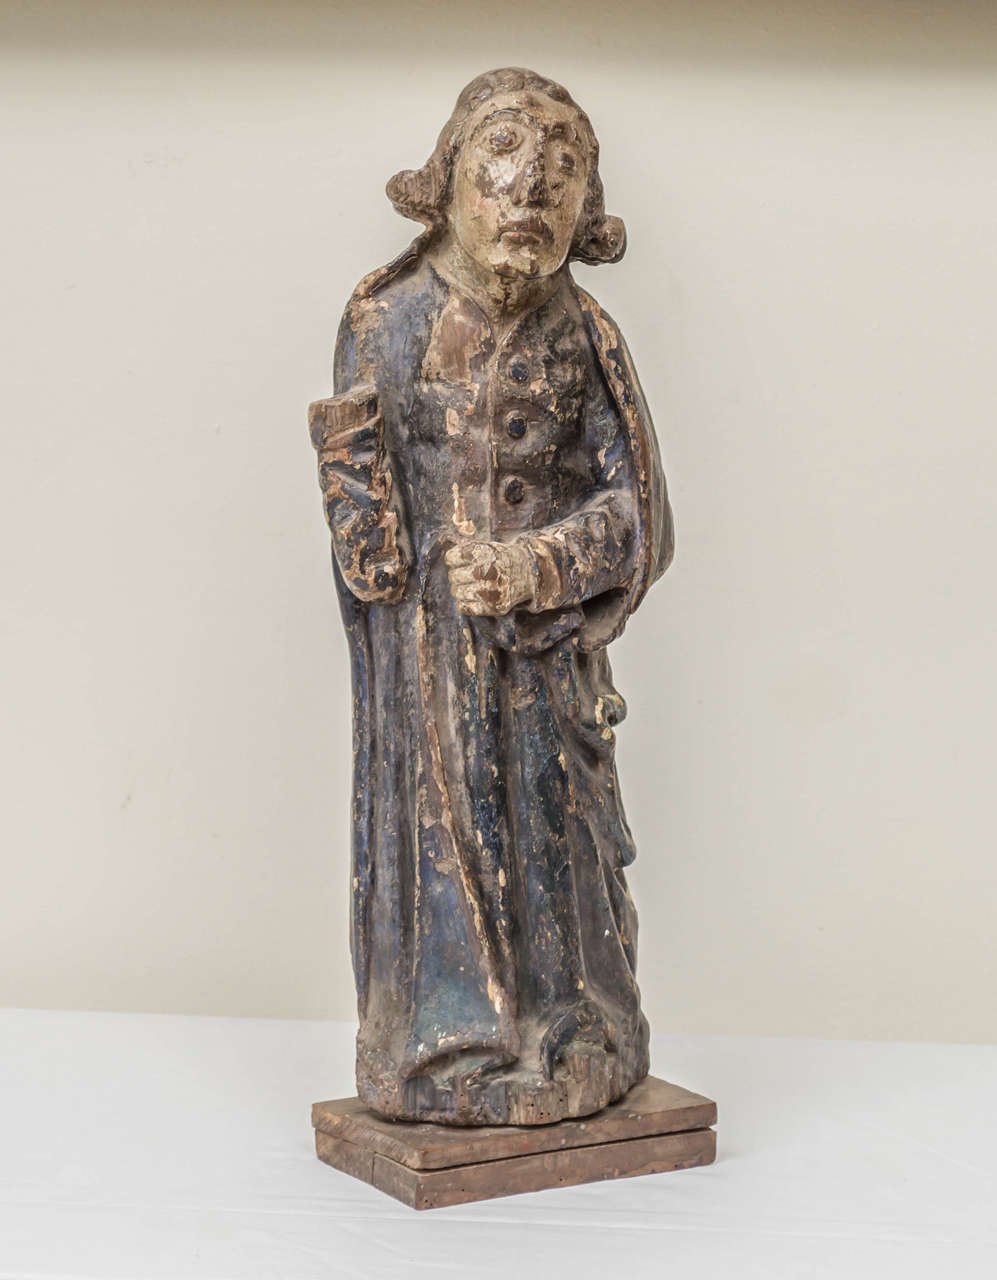 16th century French oak polychrome statue of Saint Maudez. A Breton saint from the 5th-6th century who founded a monastery off the coast of Brittany. Saint Maudez was said to have banished snakes, reptiles and worms.